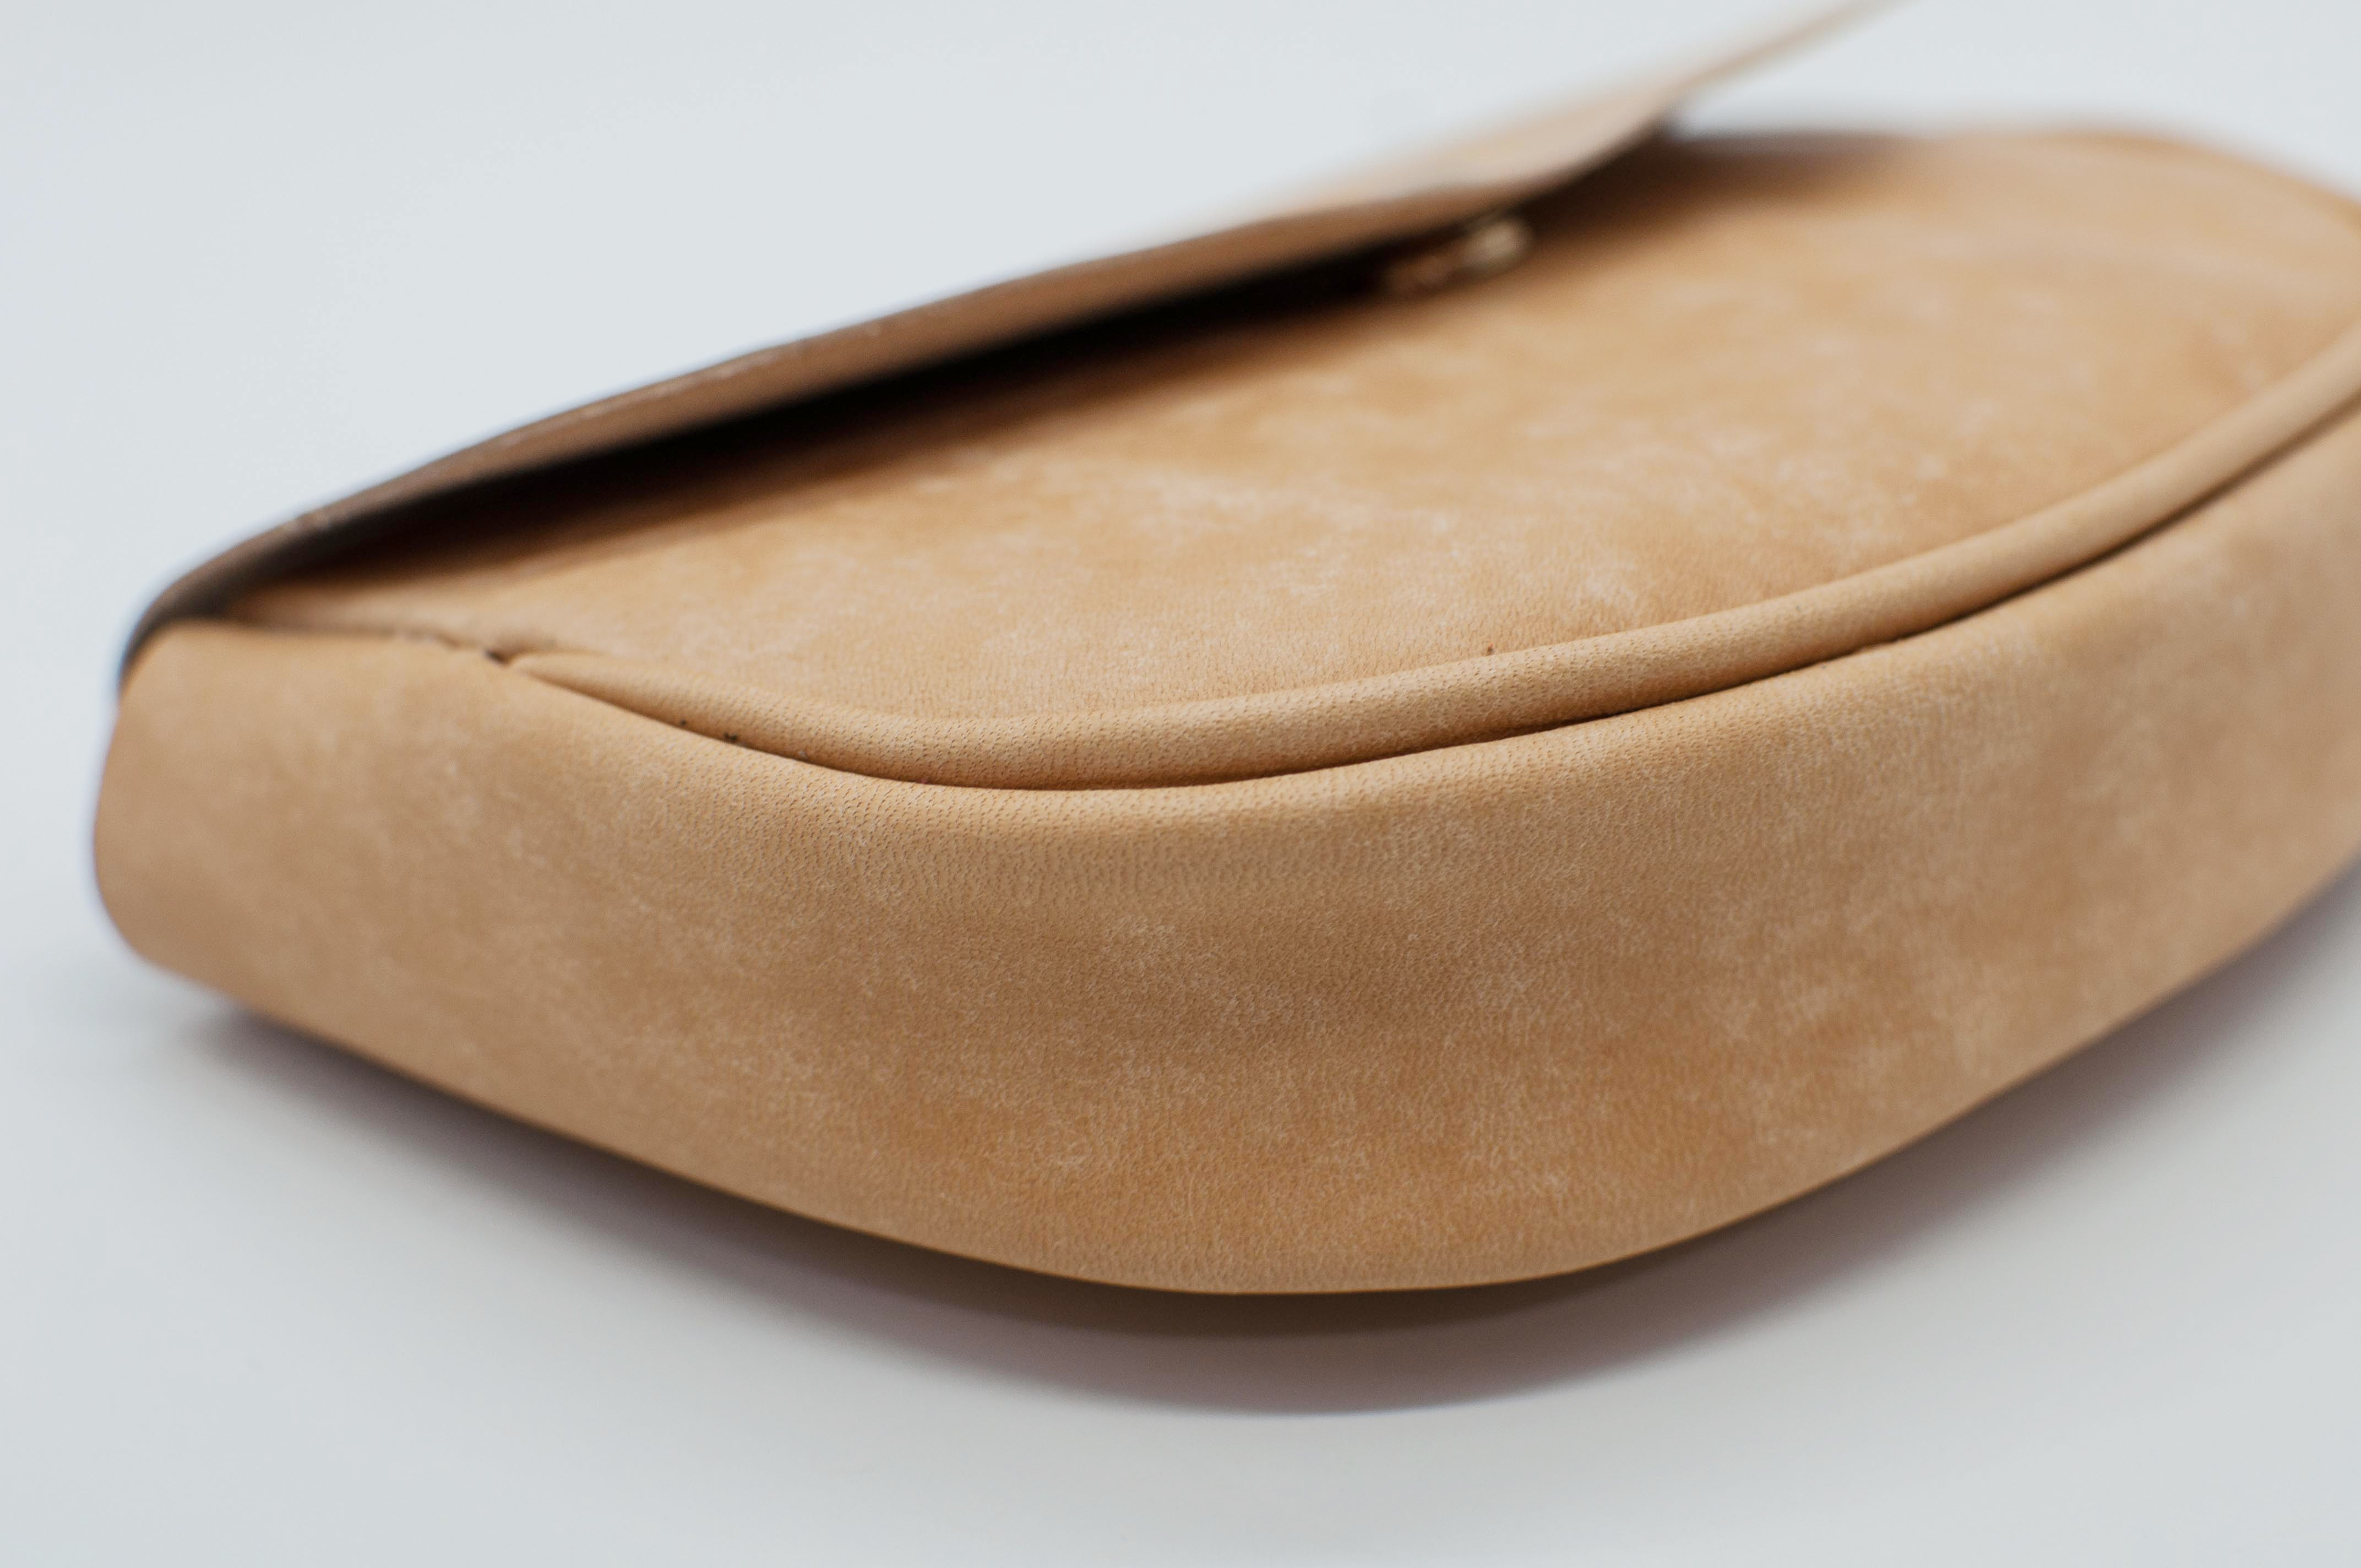 Clutch Workshop - Crafune Leather Craft Workshop and Starter Kits